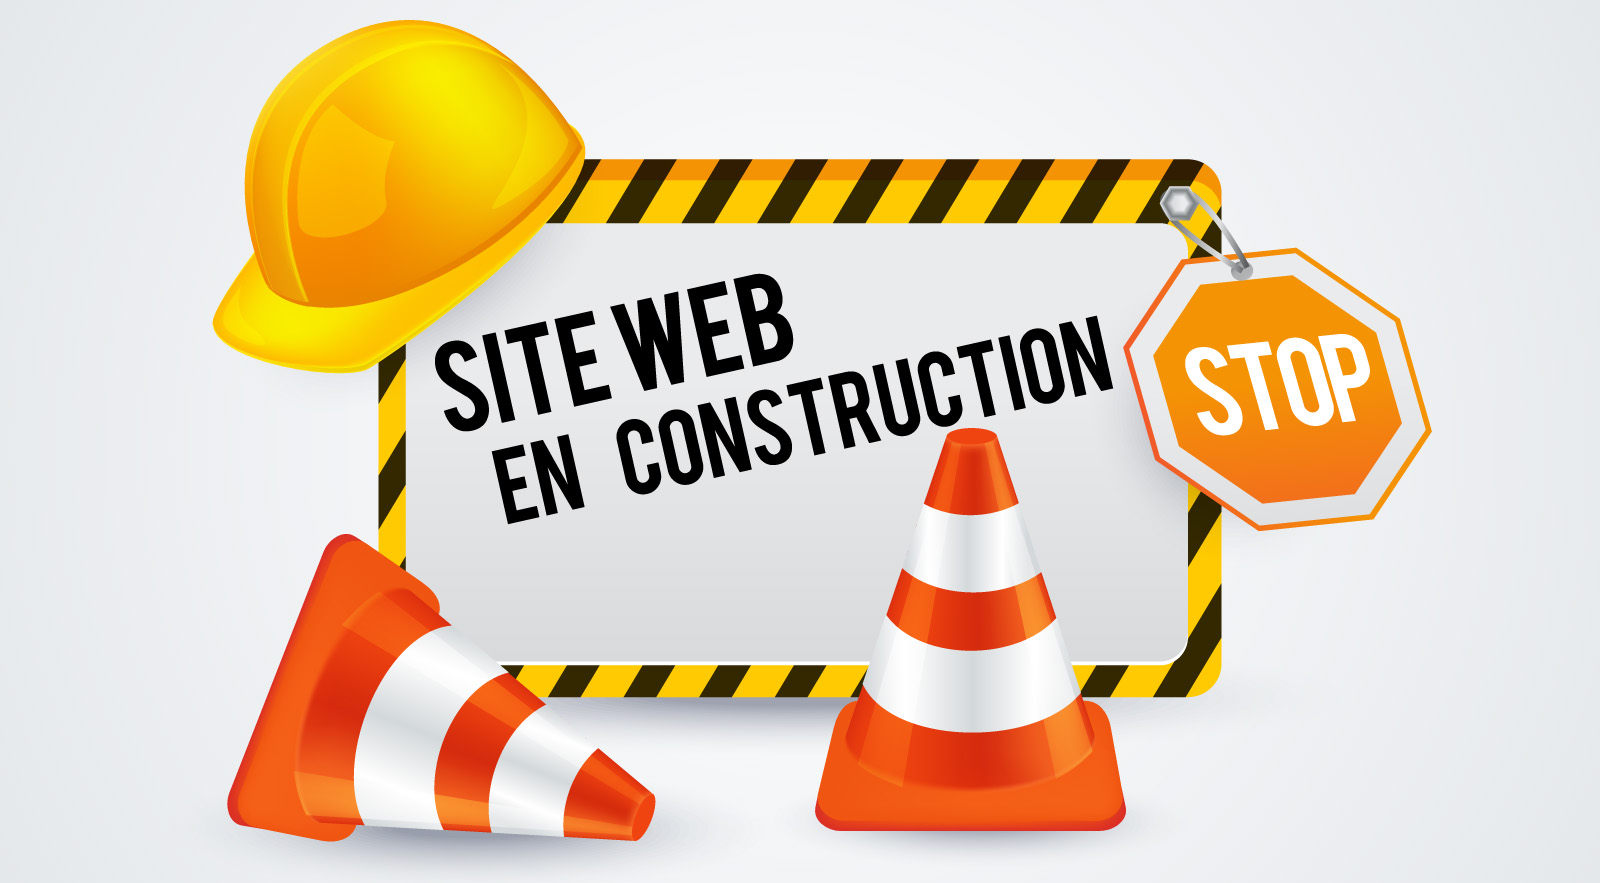 Groupe palladior site web en construction